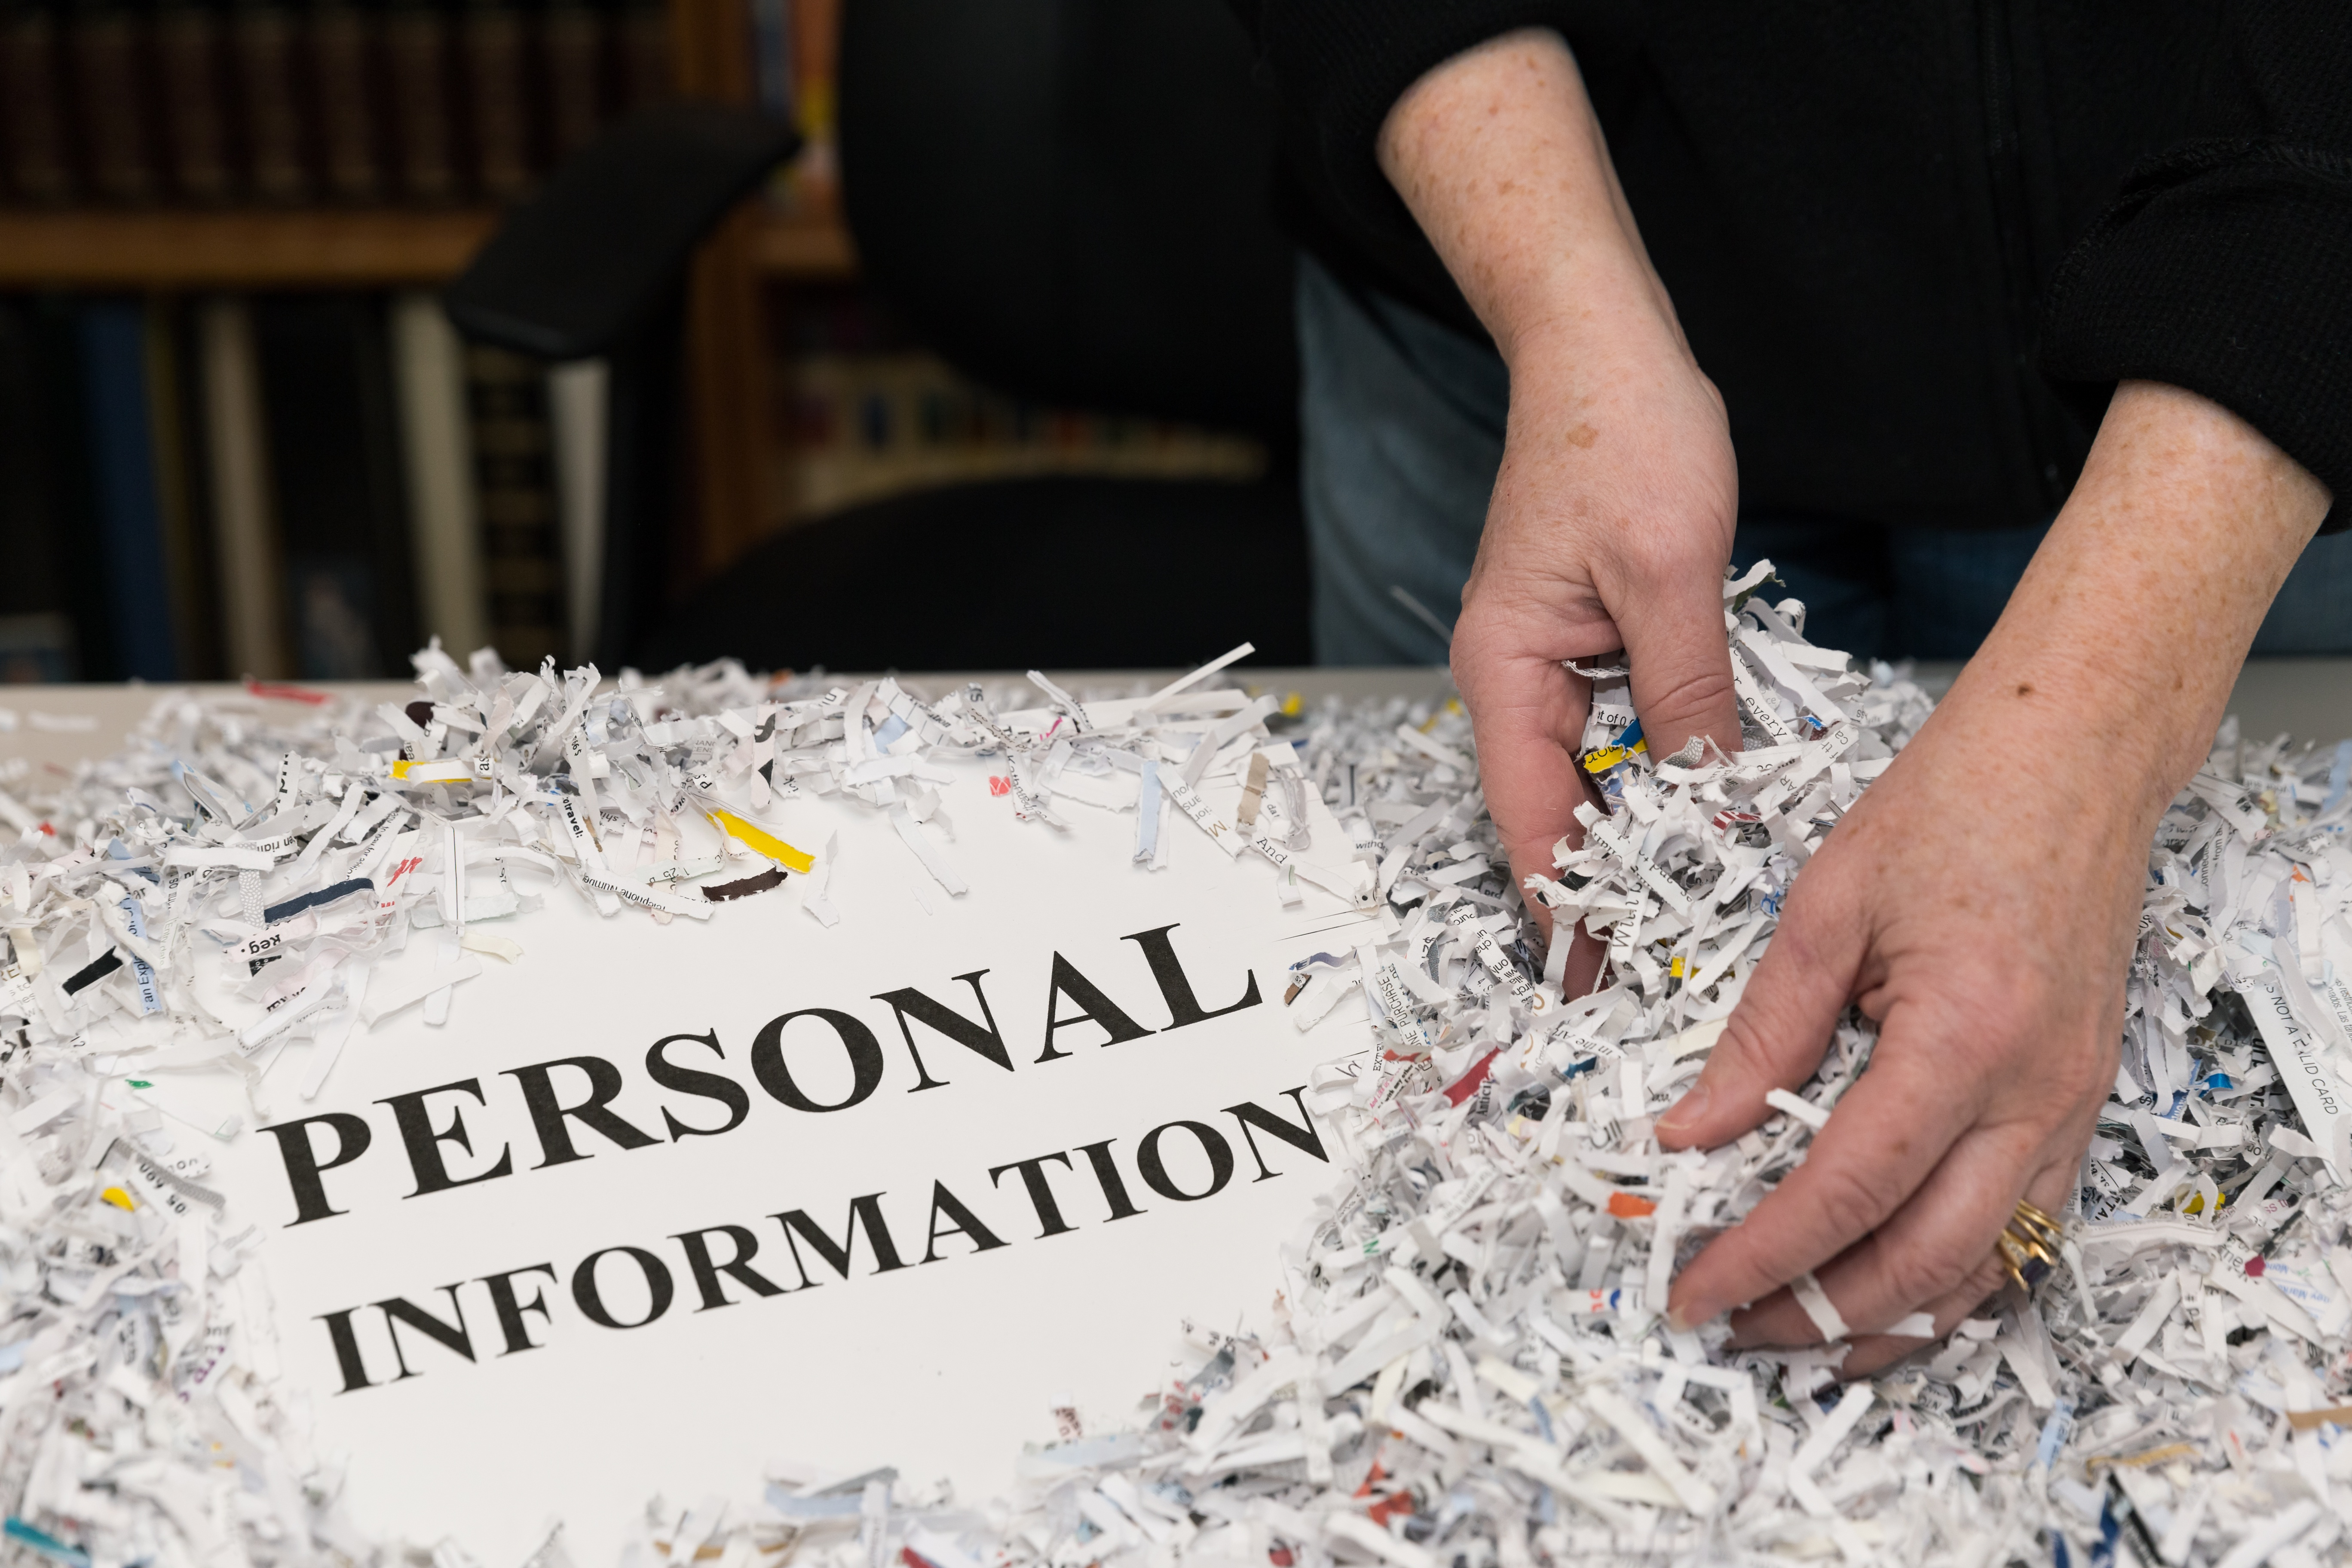 Protect personal information to ensure data security.